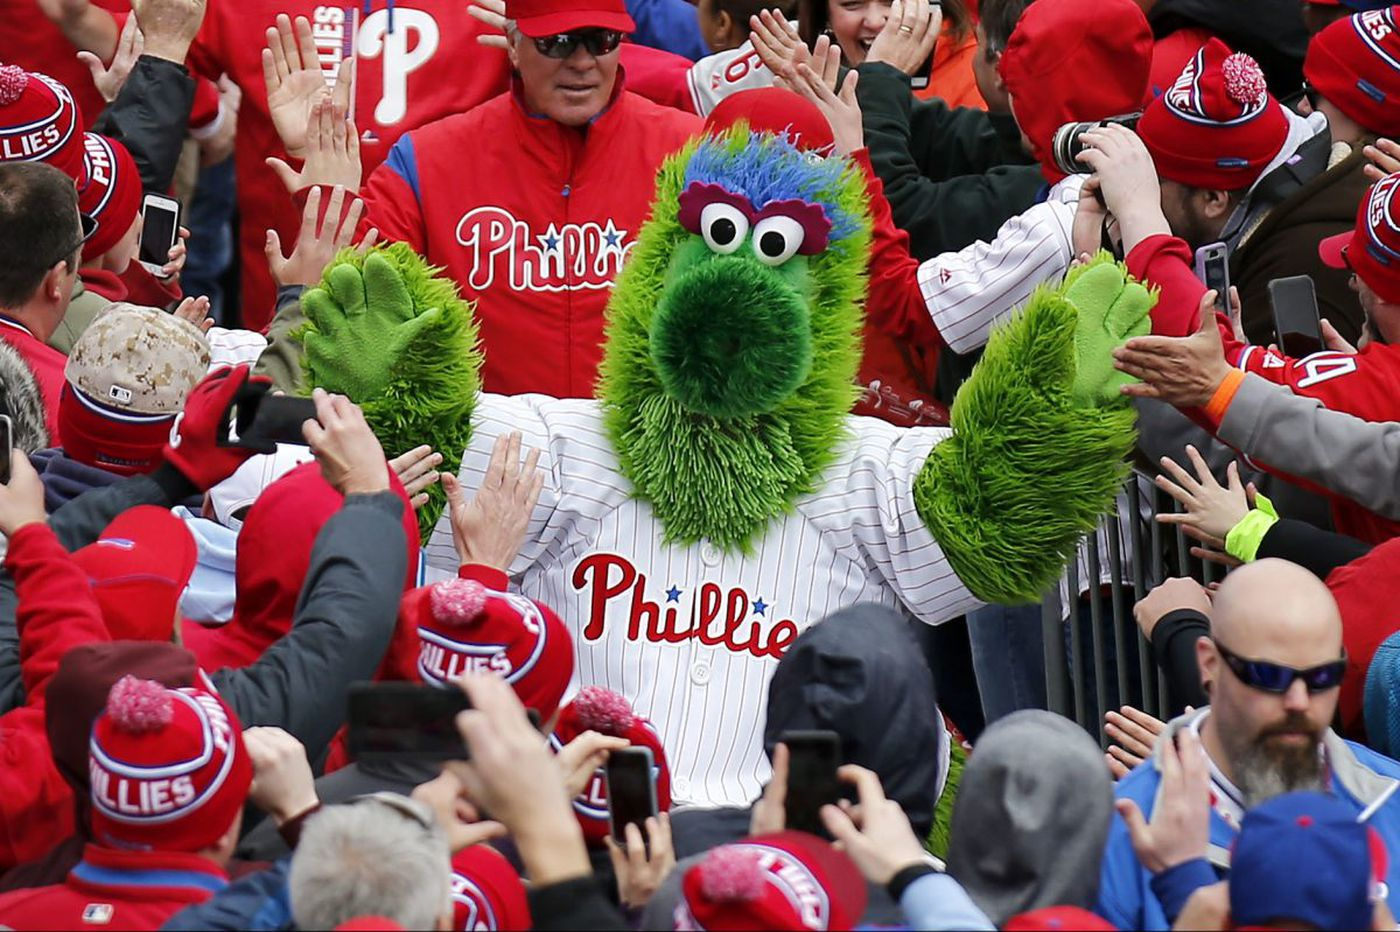 'It was one heck of a day:' Phillies fans reflect on opening days past